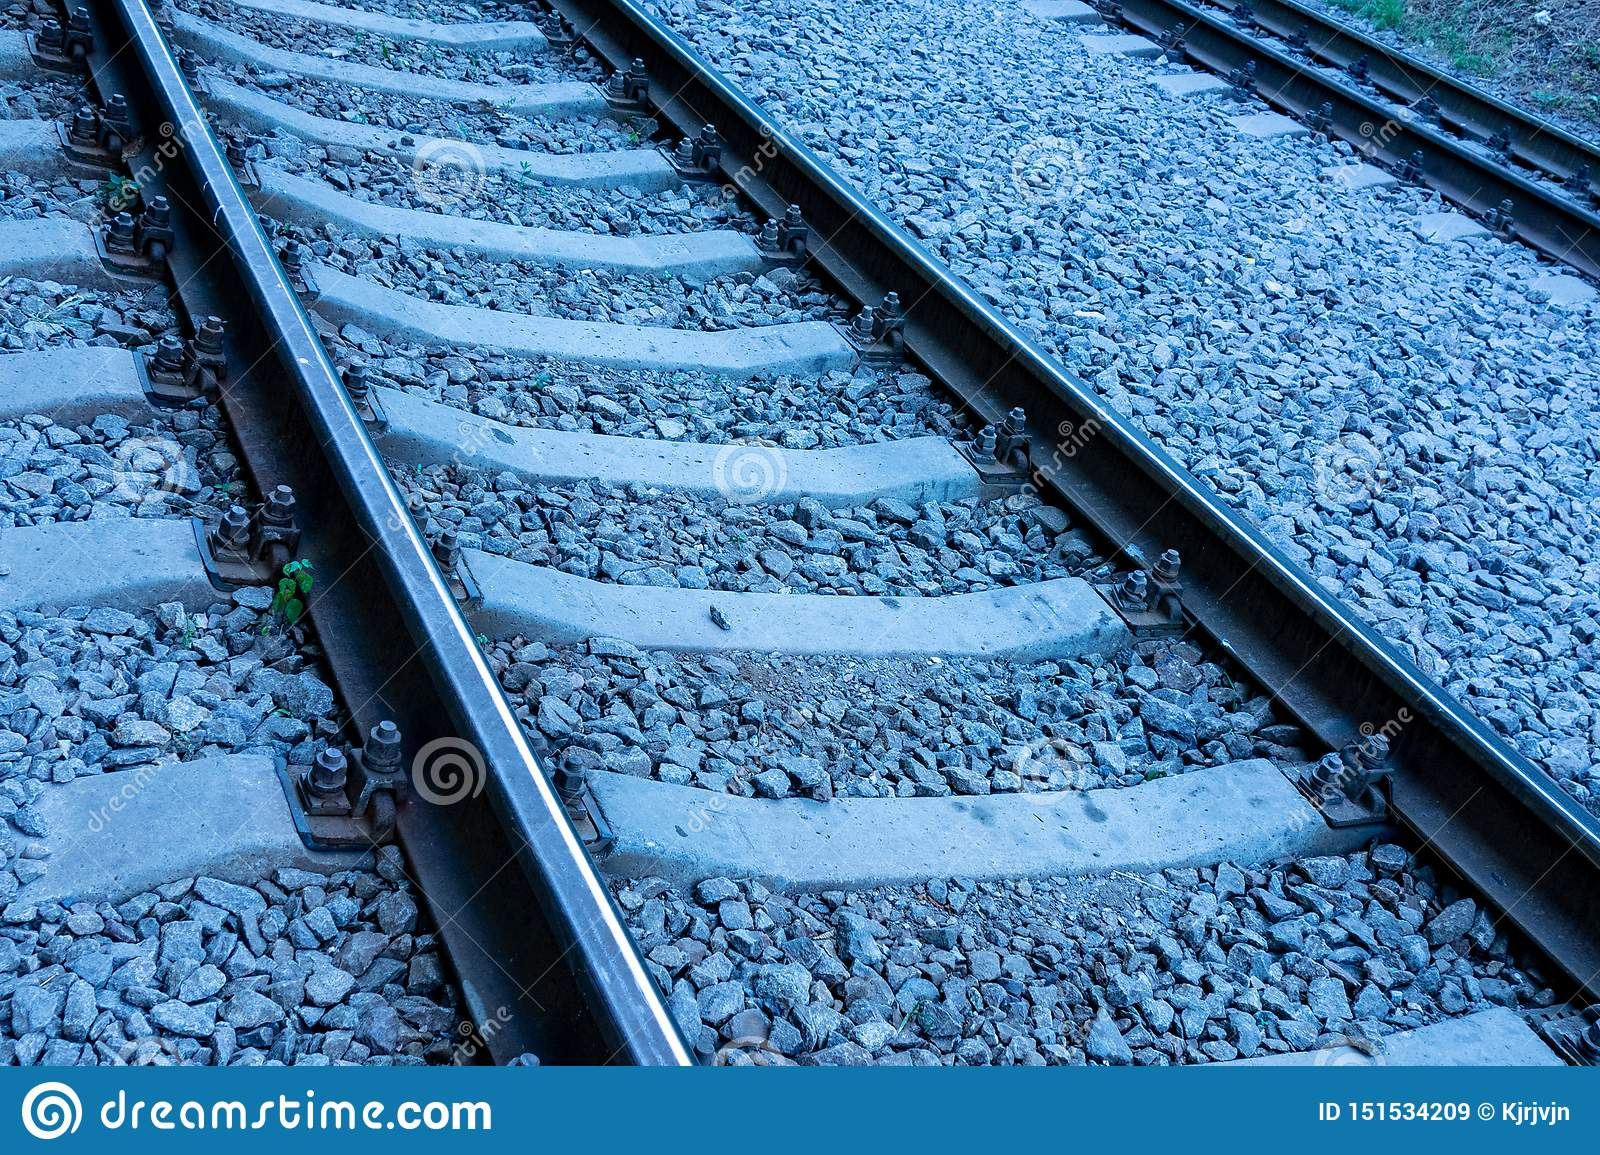 Concept of travel by train on railroads. Rails track is going upward in blue colored night or evening time. Cargo and passenger